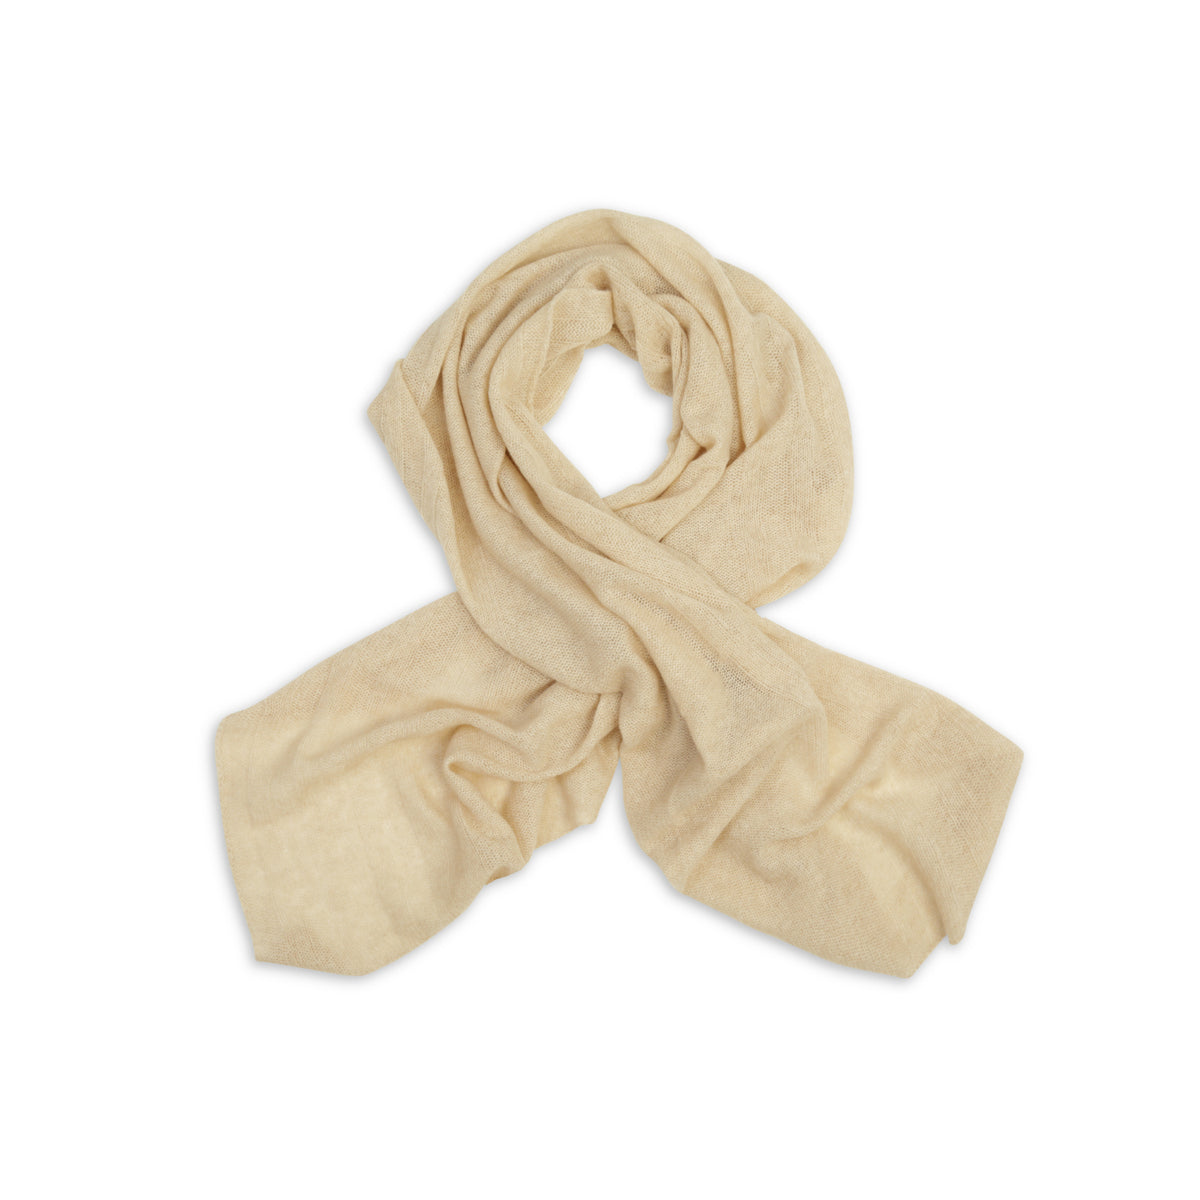 Beige | Knitted Cashmere Stole | Knitted Cashmere Scarf | Shop at The Cashmere Choice | London